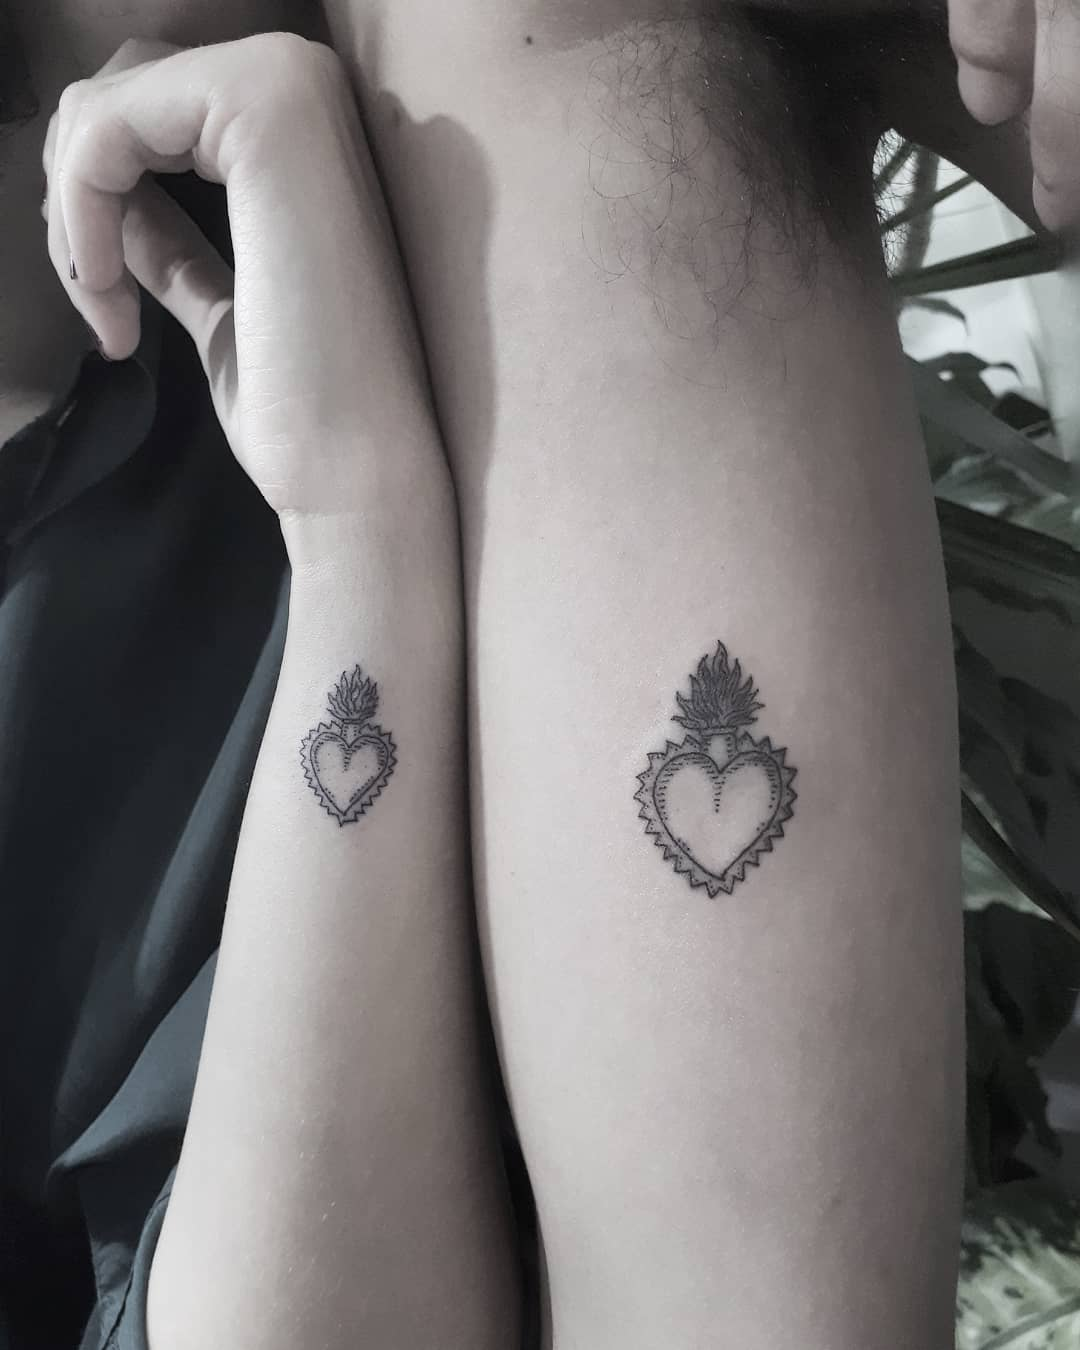 Matching hearts for a couple